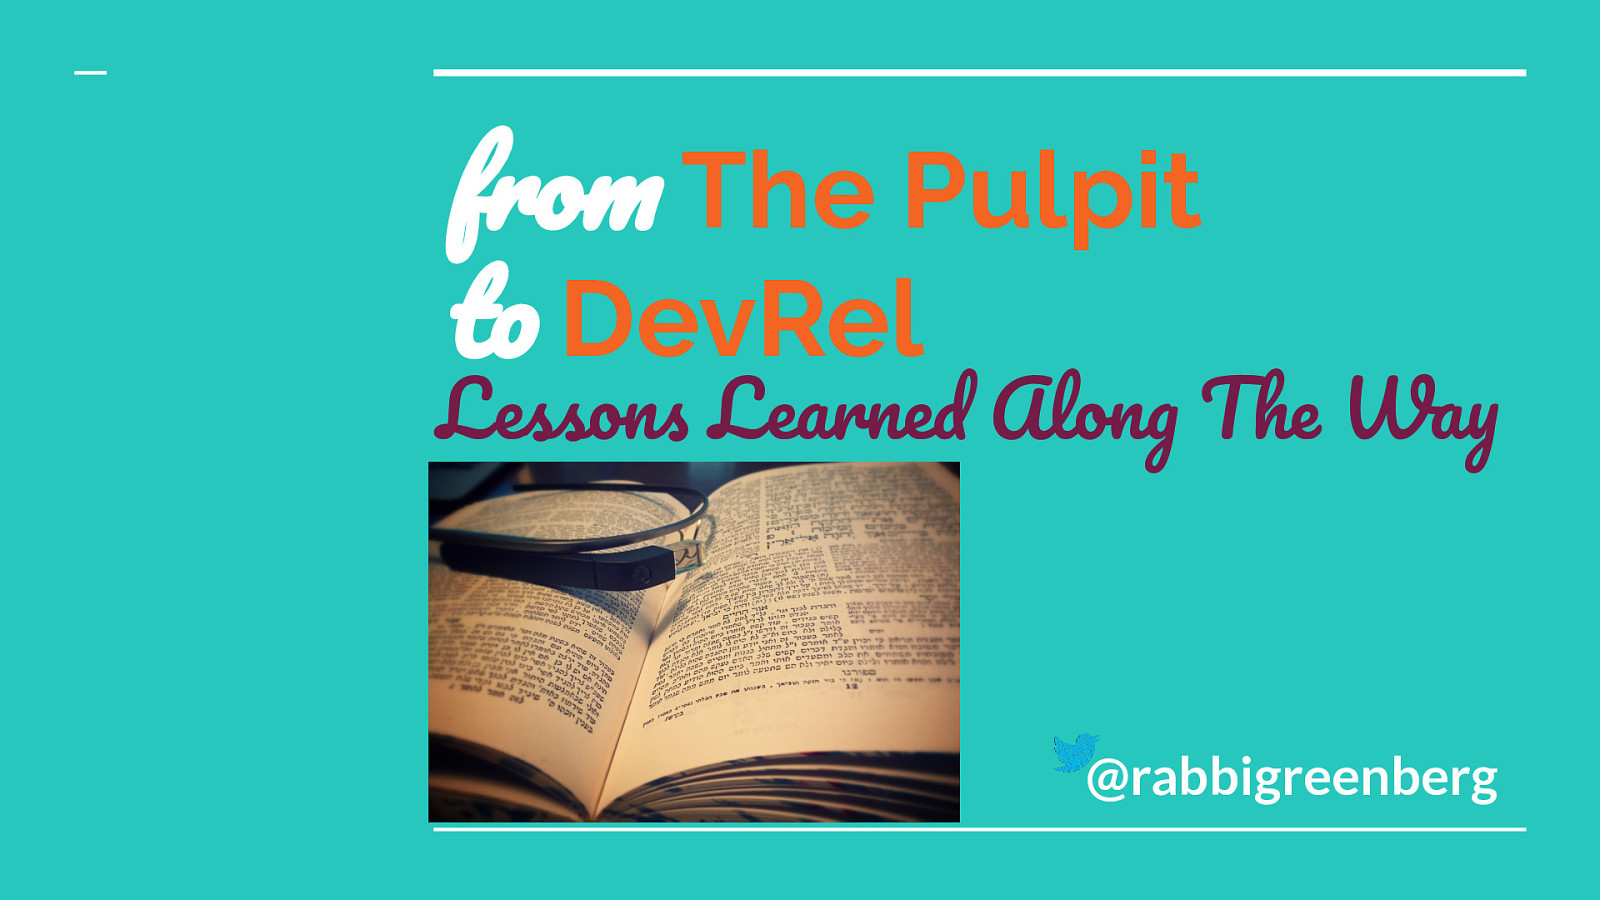 From the Pulpit to DevRel: Lessons Learned Along the Way